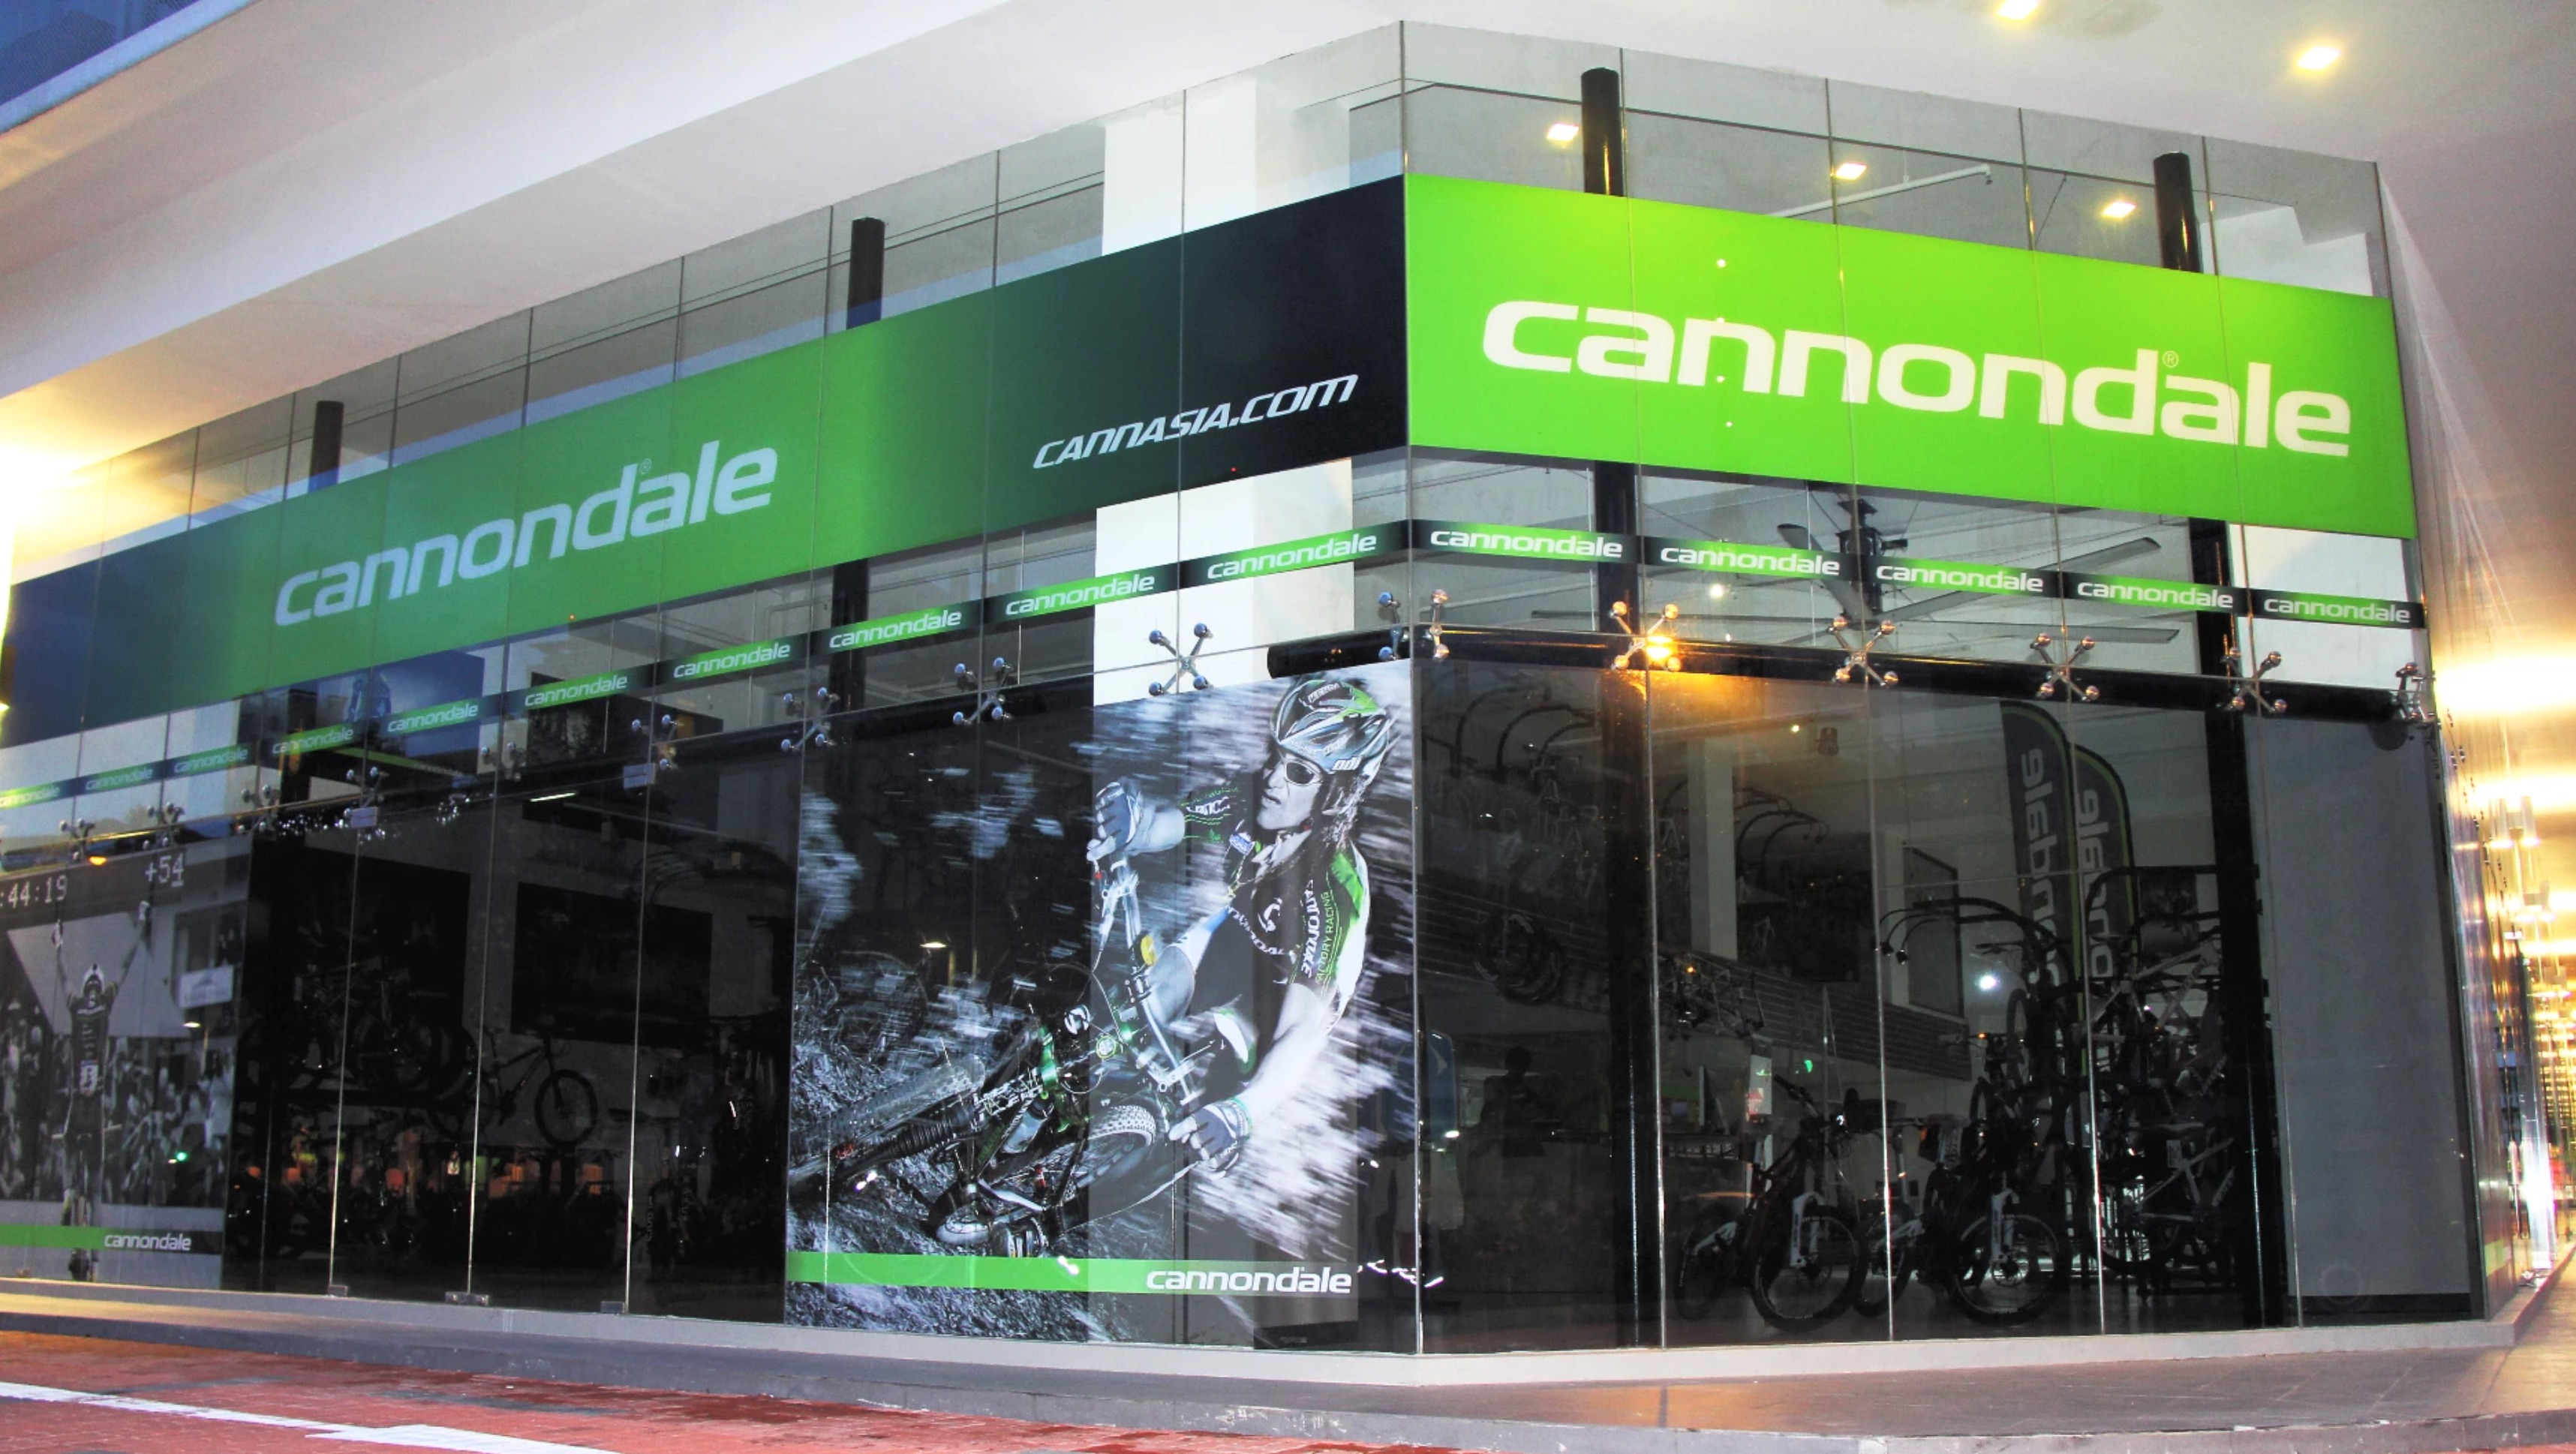 cannasia vertex showroom